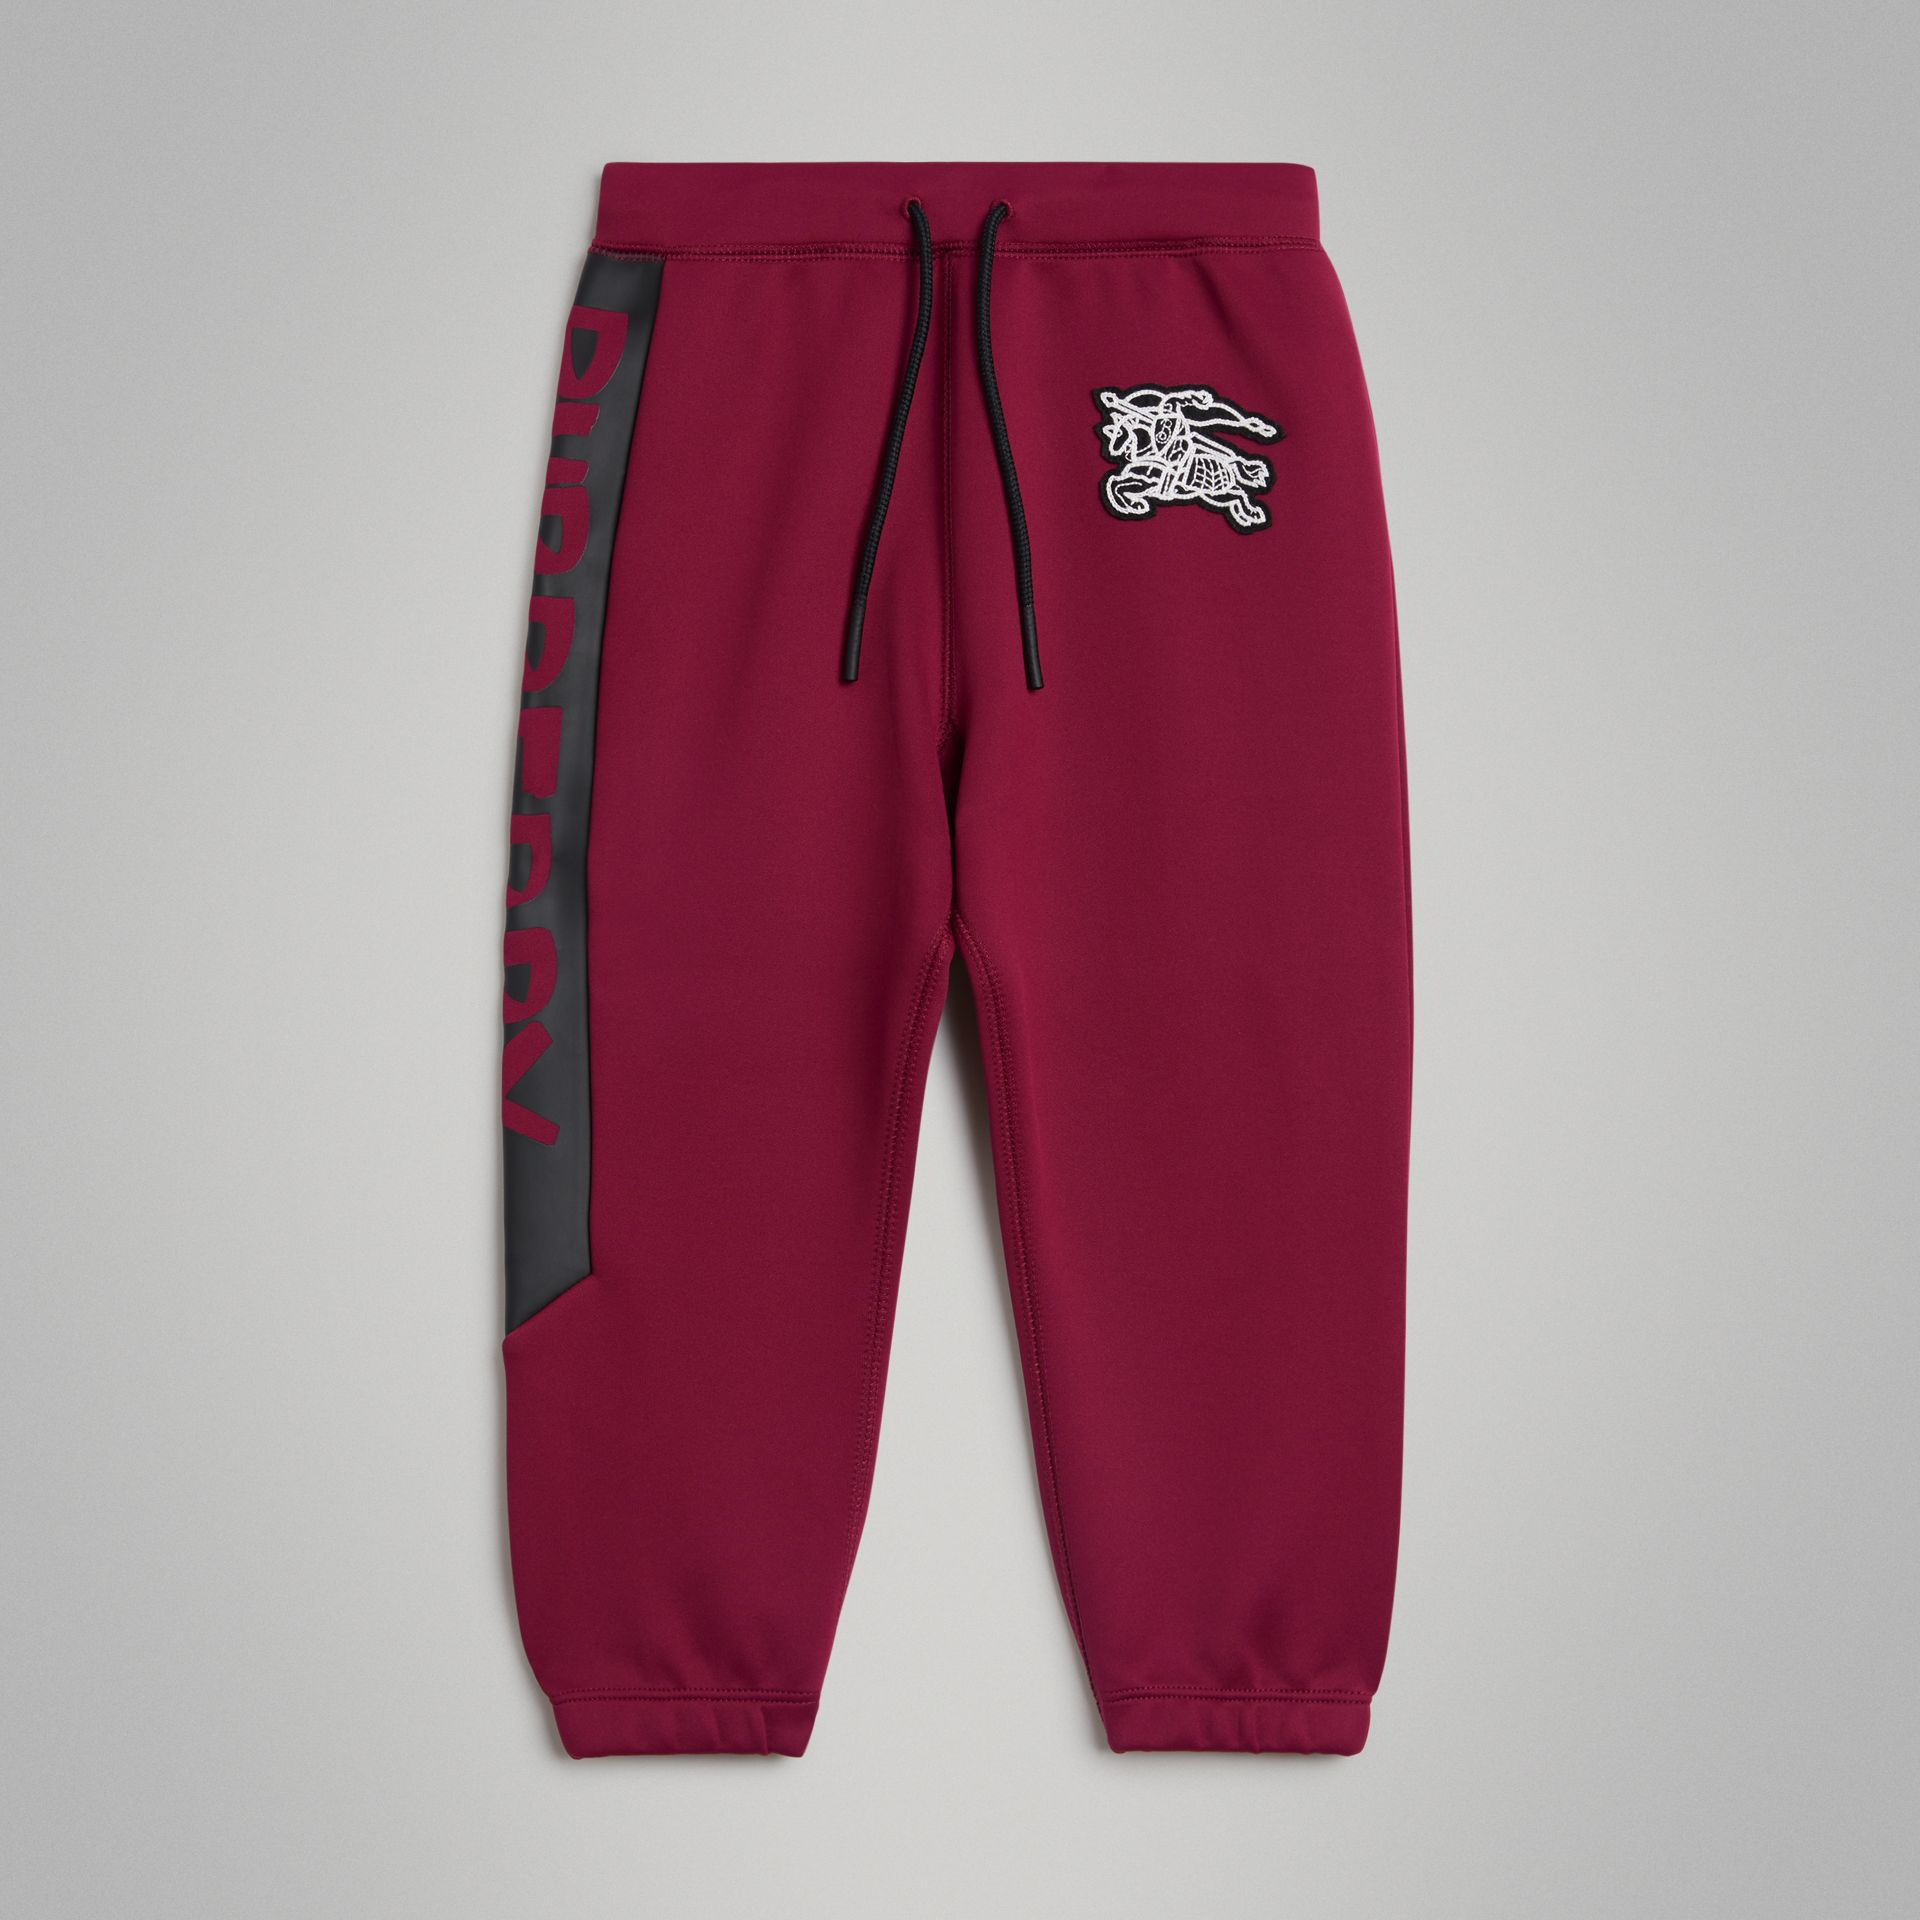 Graffiti Print Jersey Sweatpants in Burgundy | Burberry - gallery image 0